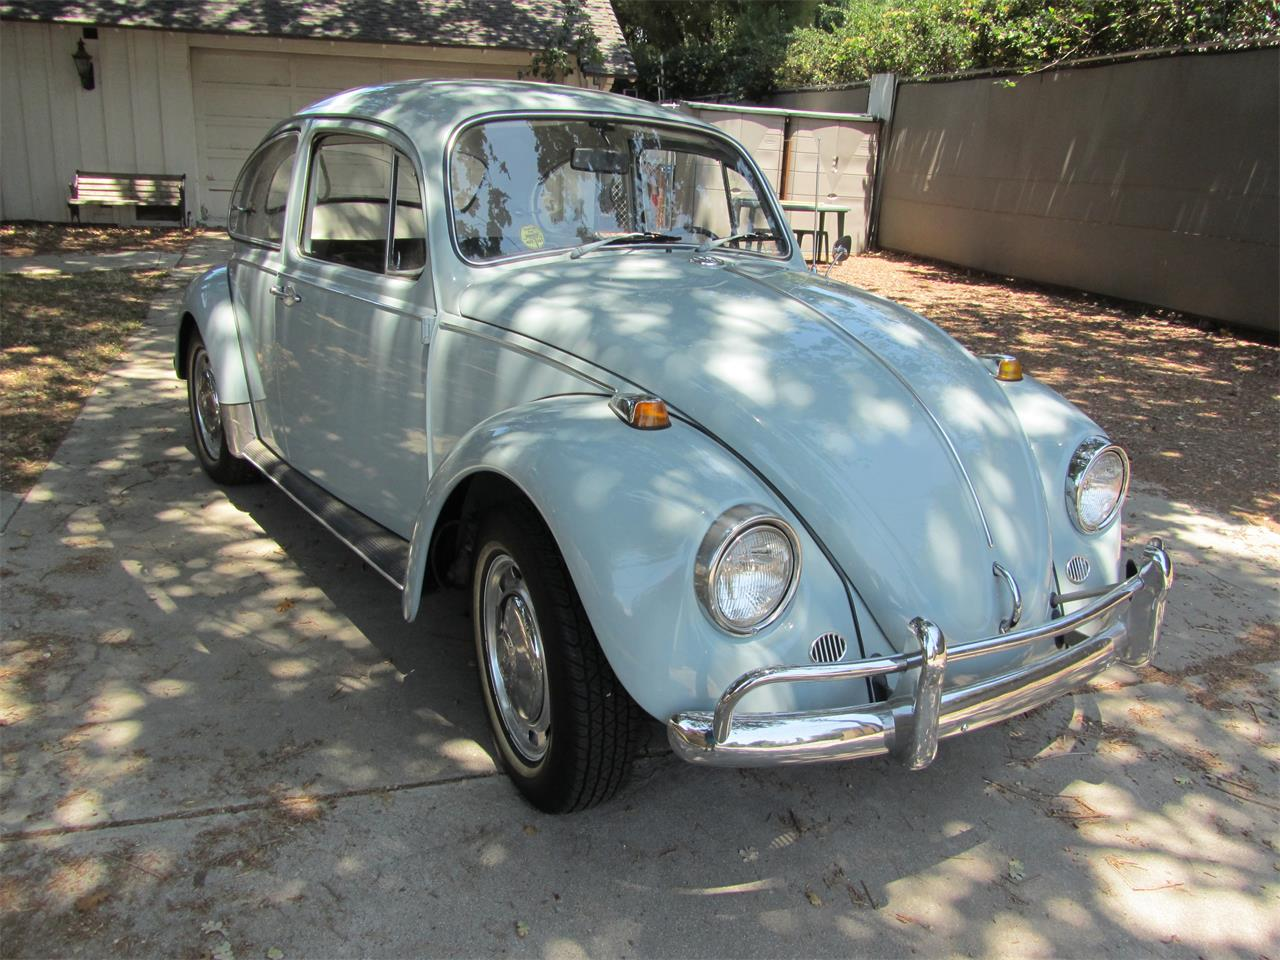 for sale 1967 volkswagen beetle in chatsworth, california cars - chatsworth, ca at geebo